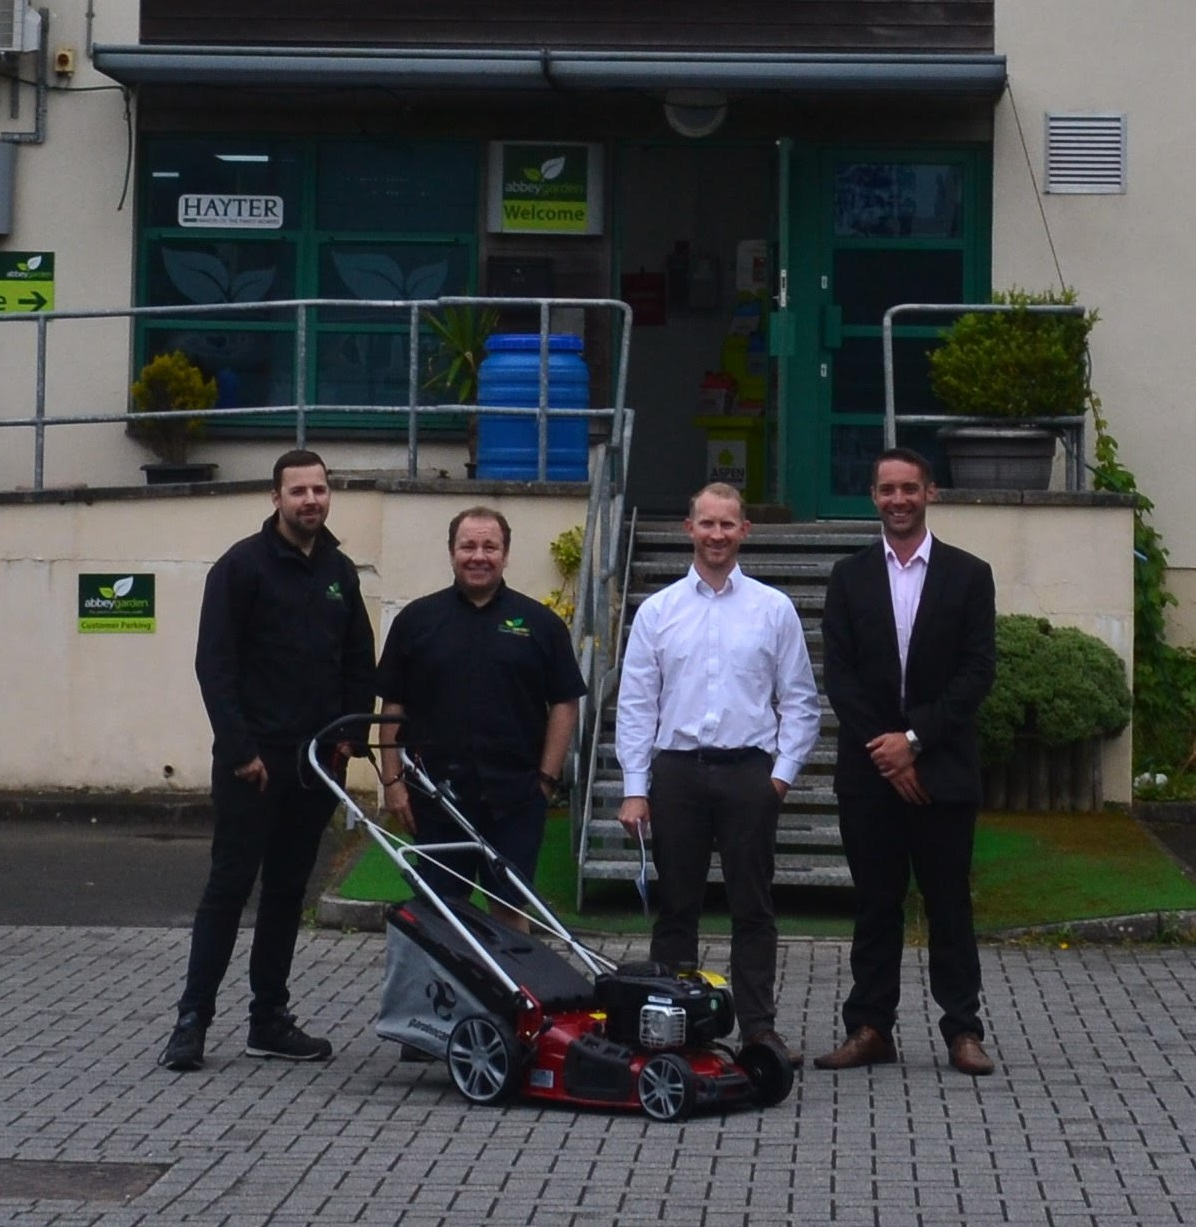 GARDENCARE APPOINTS CENTRAL SPARES